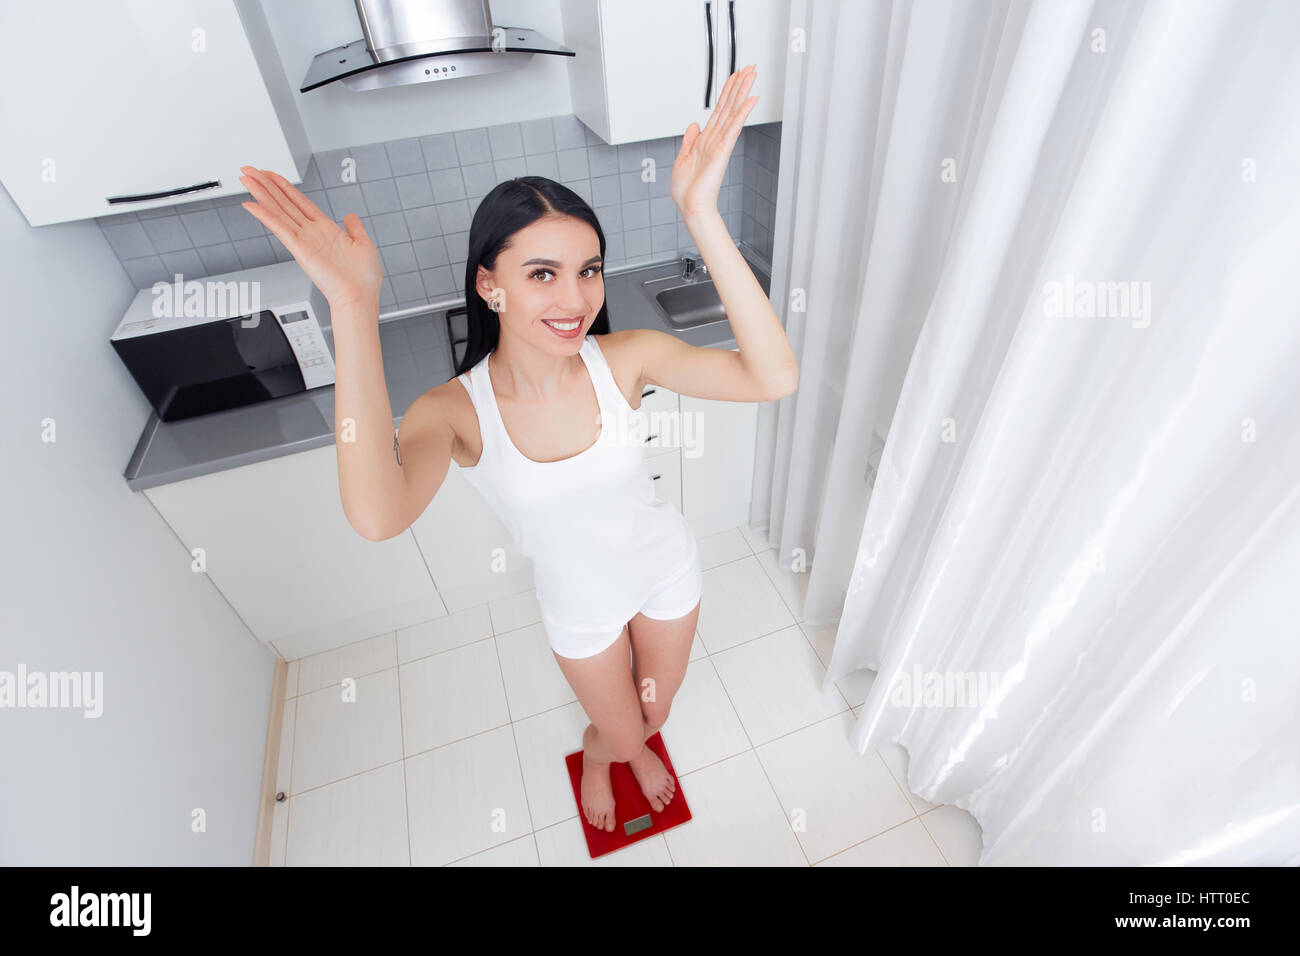 Happy woman weighing in morning and happy smiling, gesturing by hands rise up and looking at camera. Brunette pretty - Stock Image